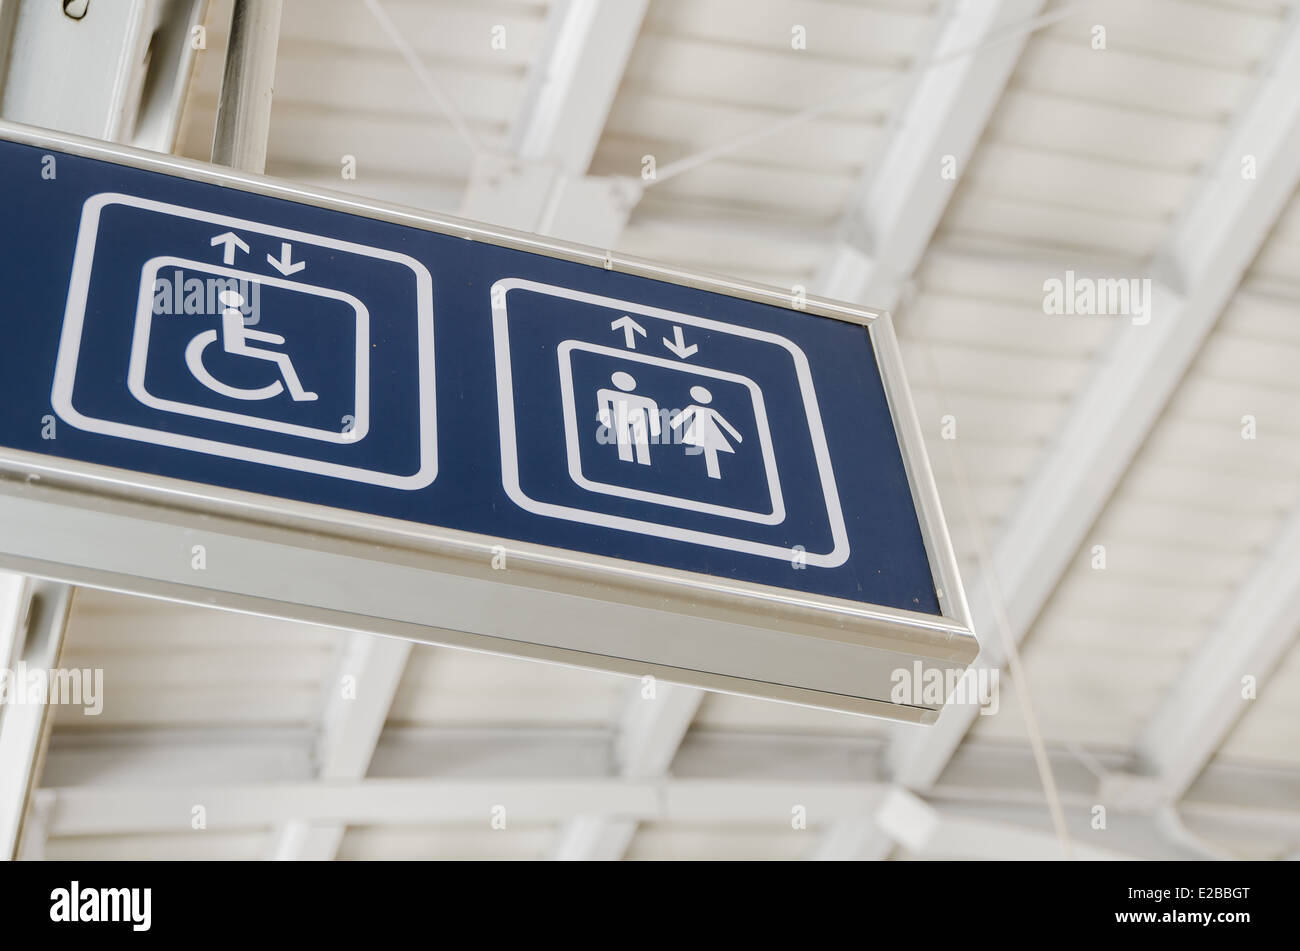 Elevator Sign, direction to elevator - Stock Image